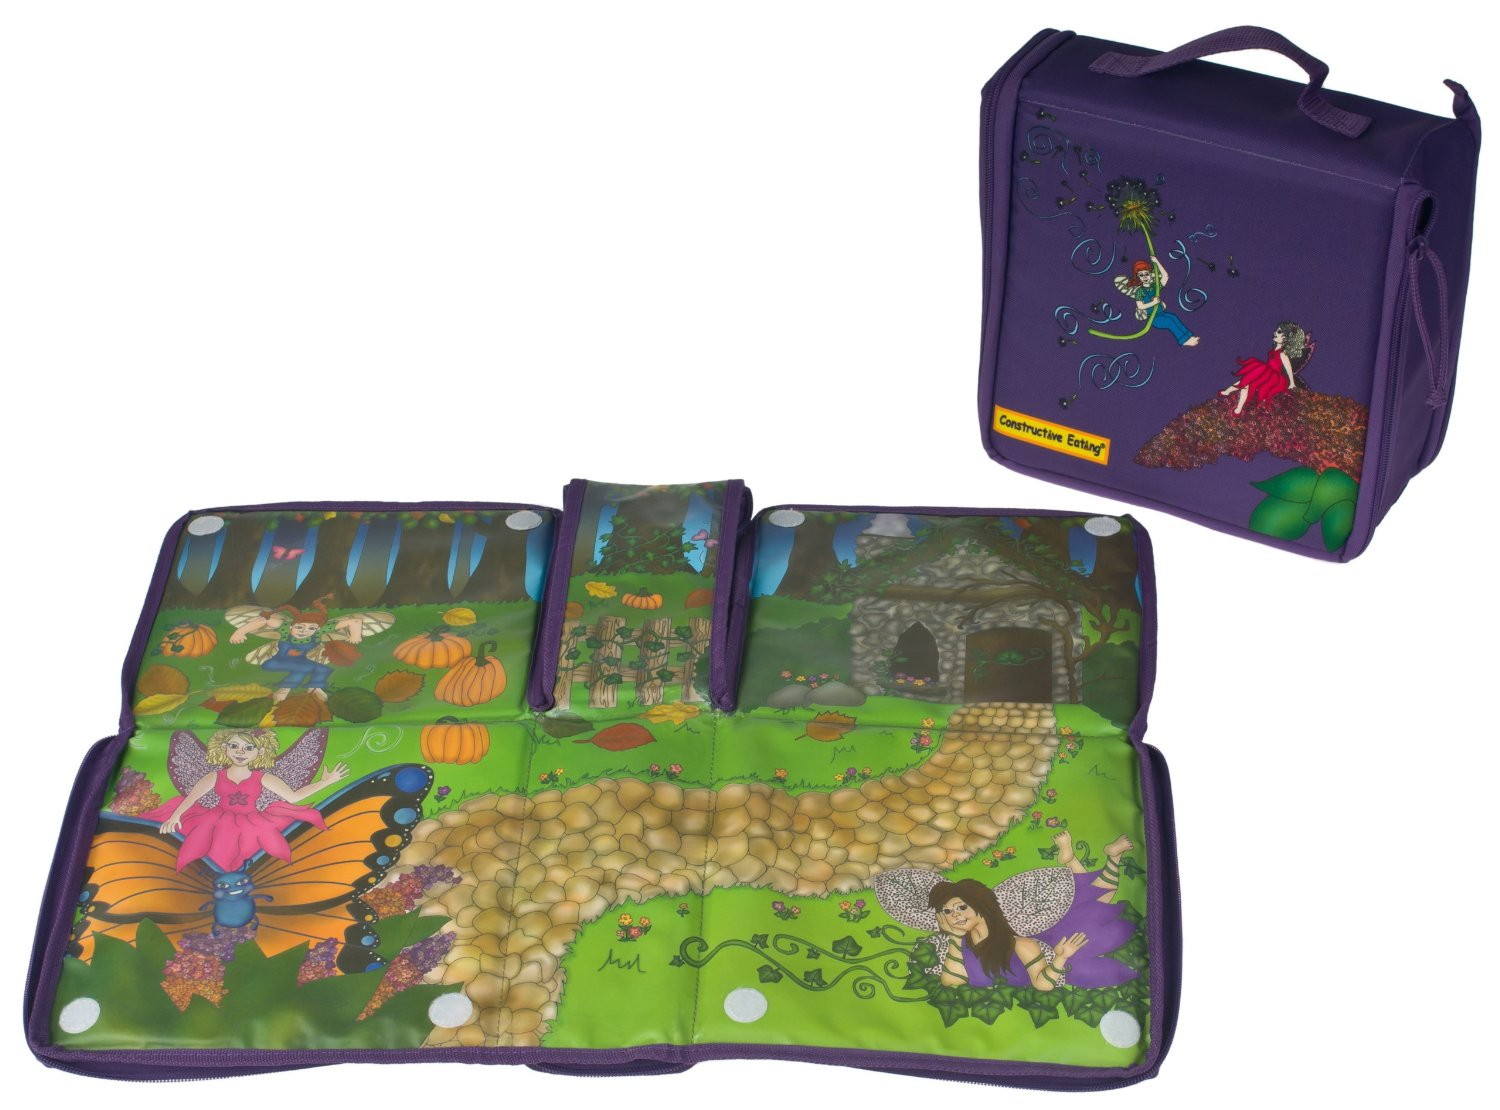 Constructive Eating - Garden Fairy Transforming Lunch Tote